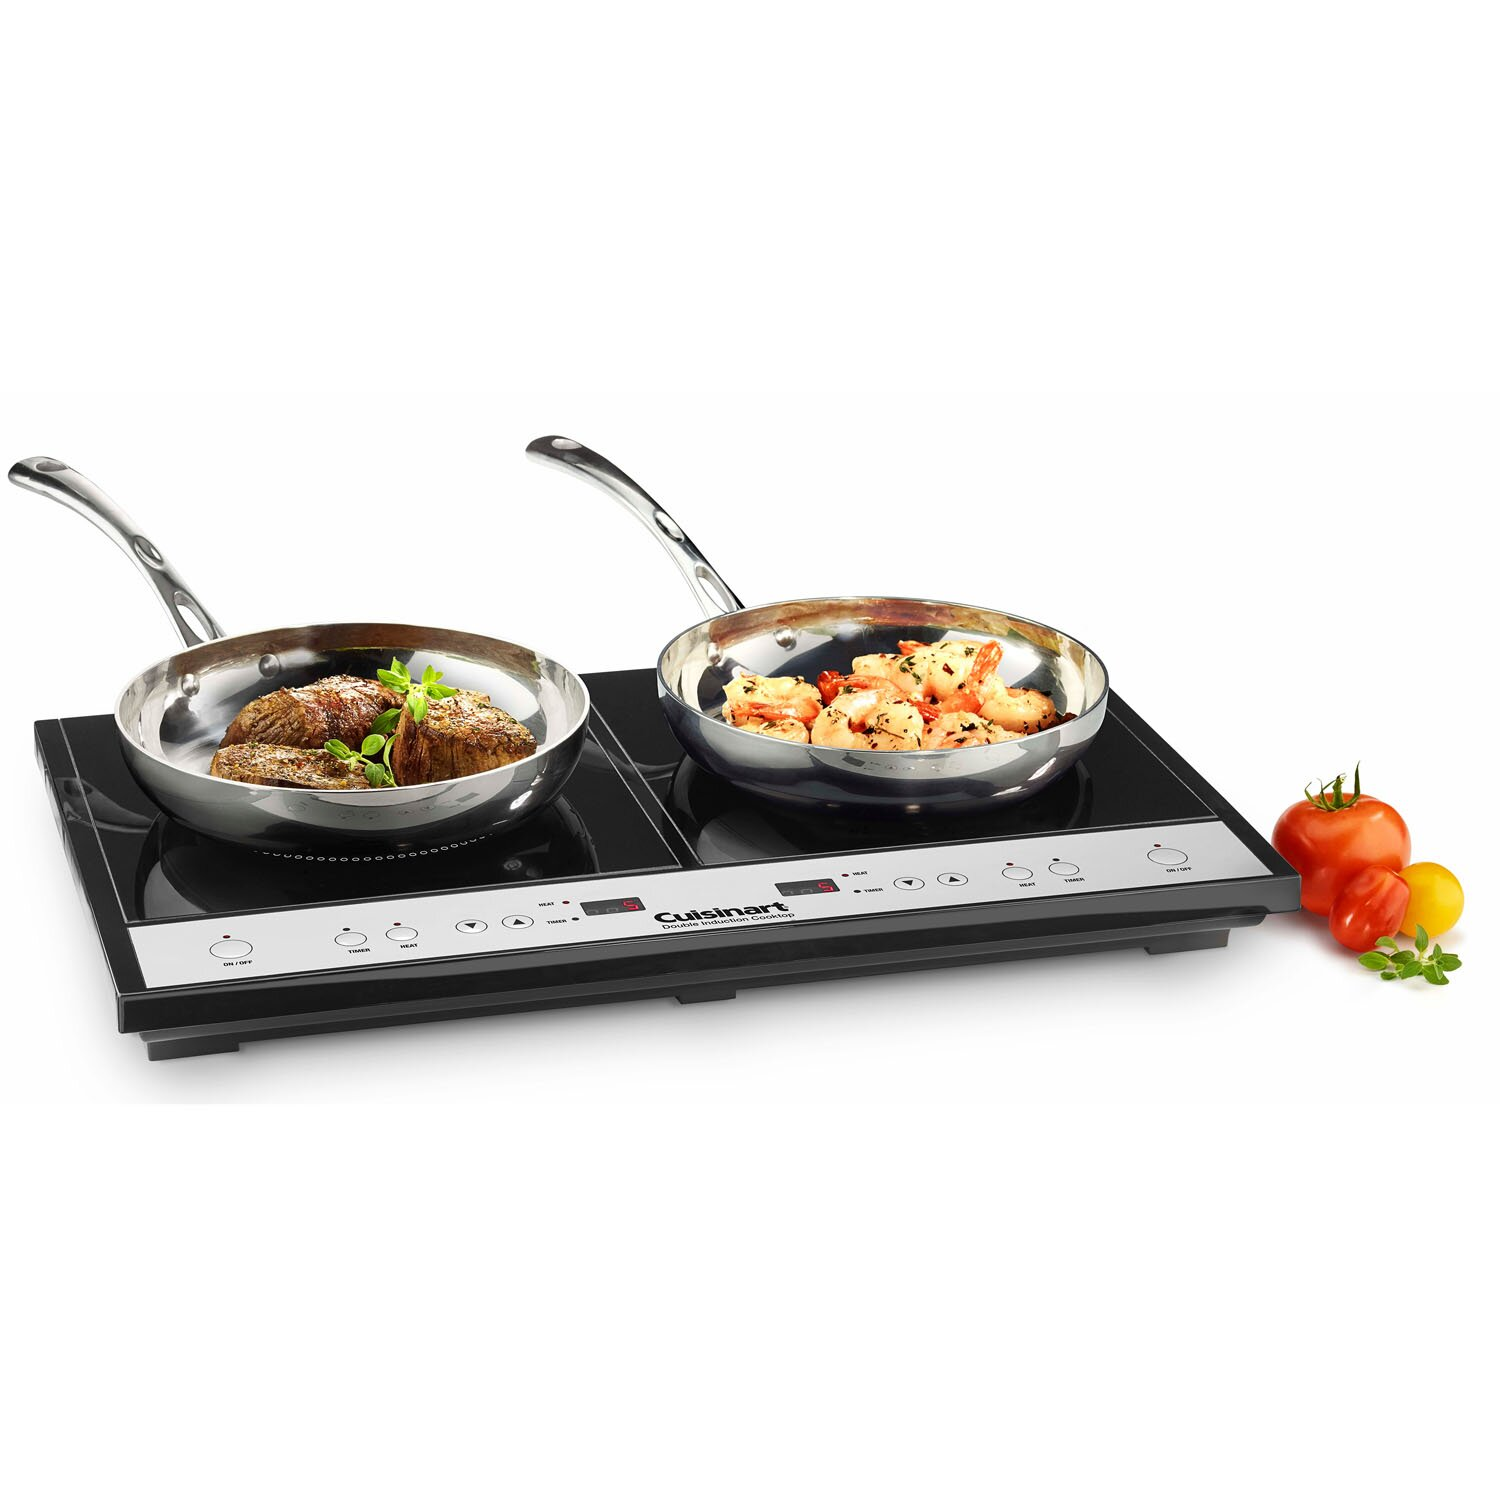 Double Induction Burner for Countertop Use | AllModern